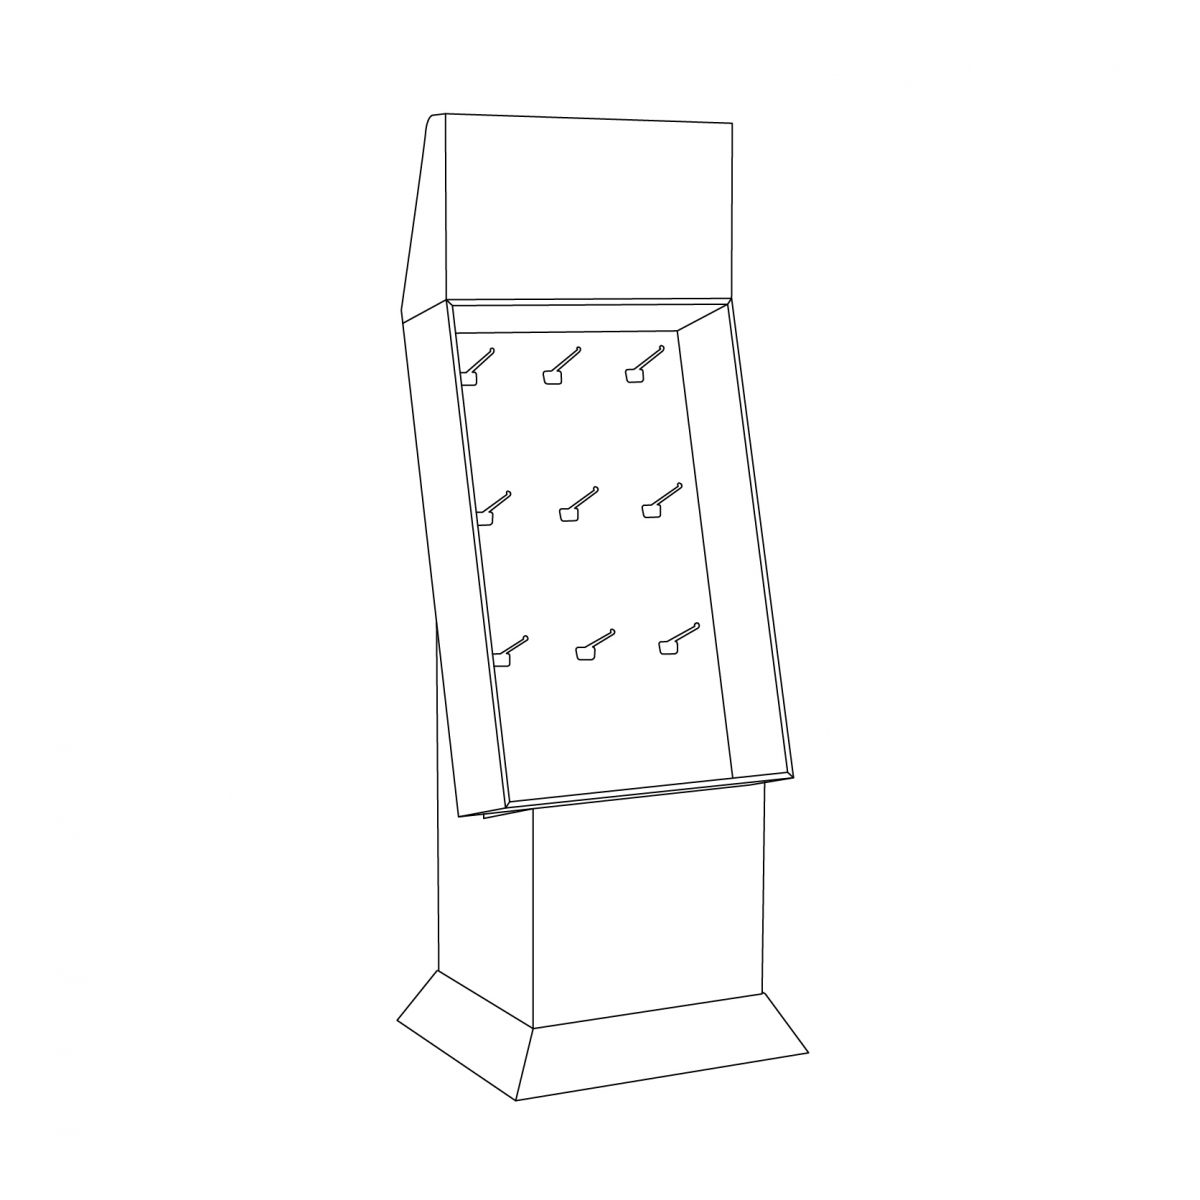 Cardboard floor peg display with header, placed on a base and a kicker- outline